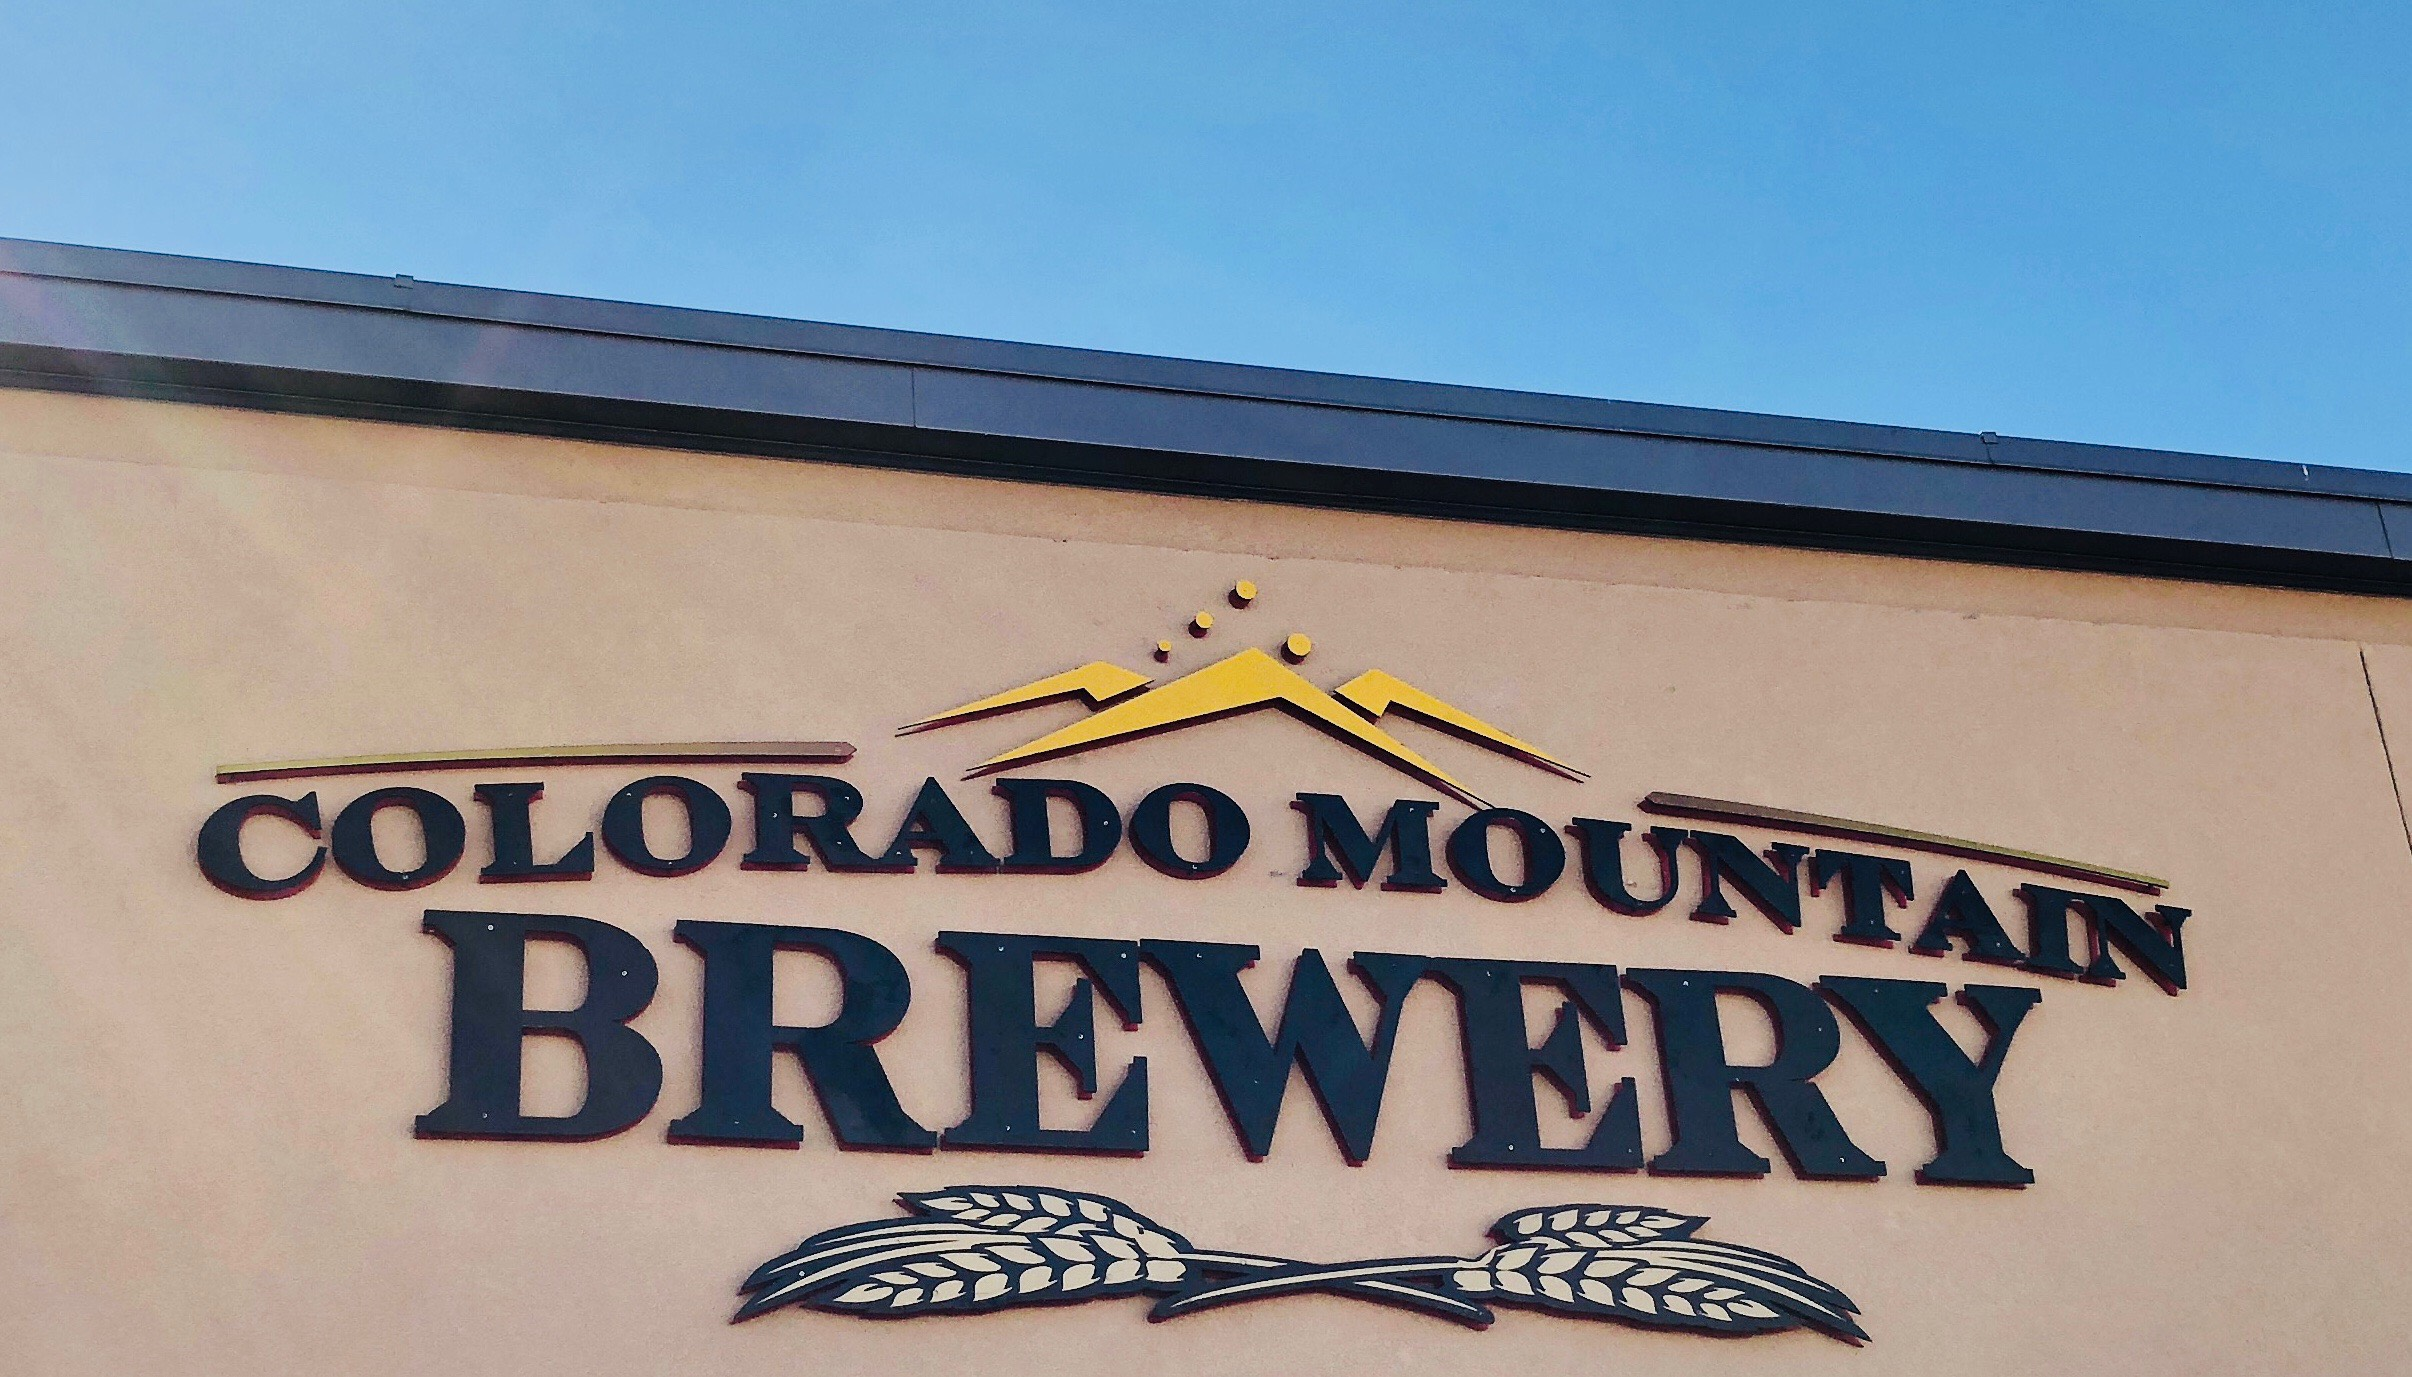 Colorado Mountain Brewery 3.jpeg